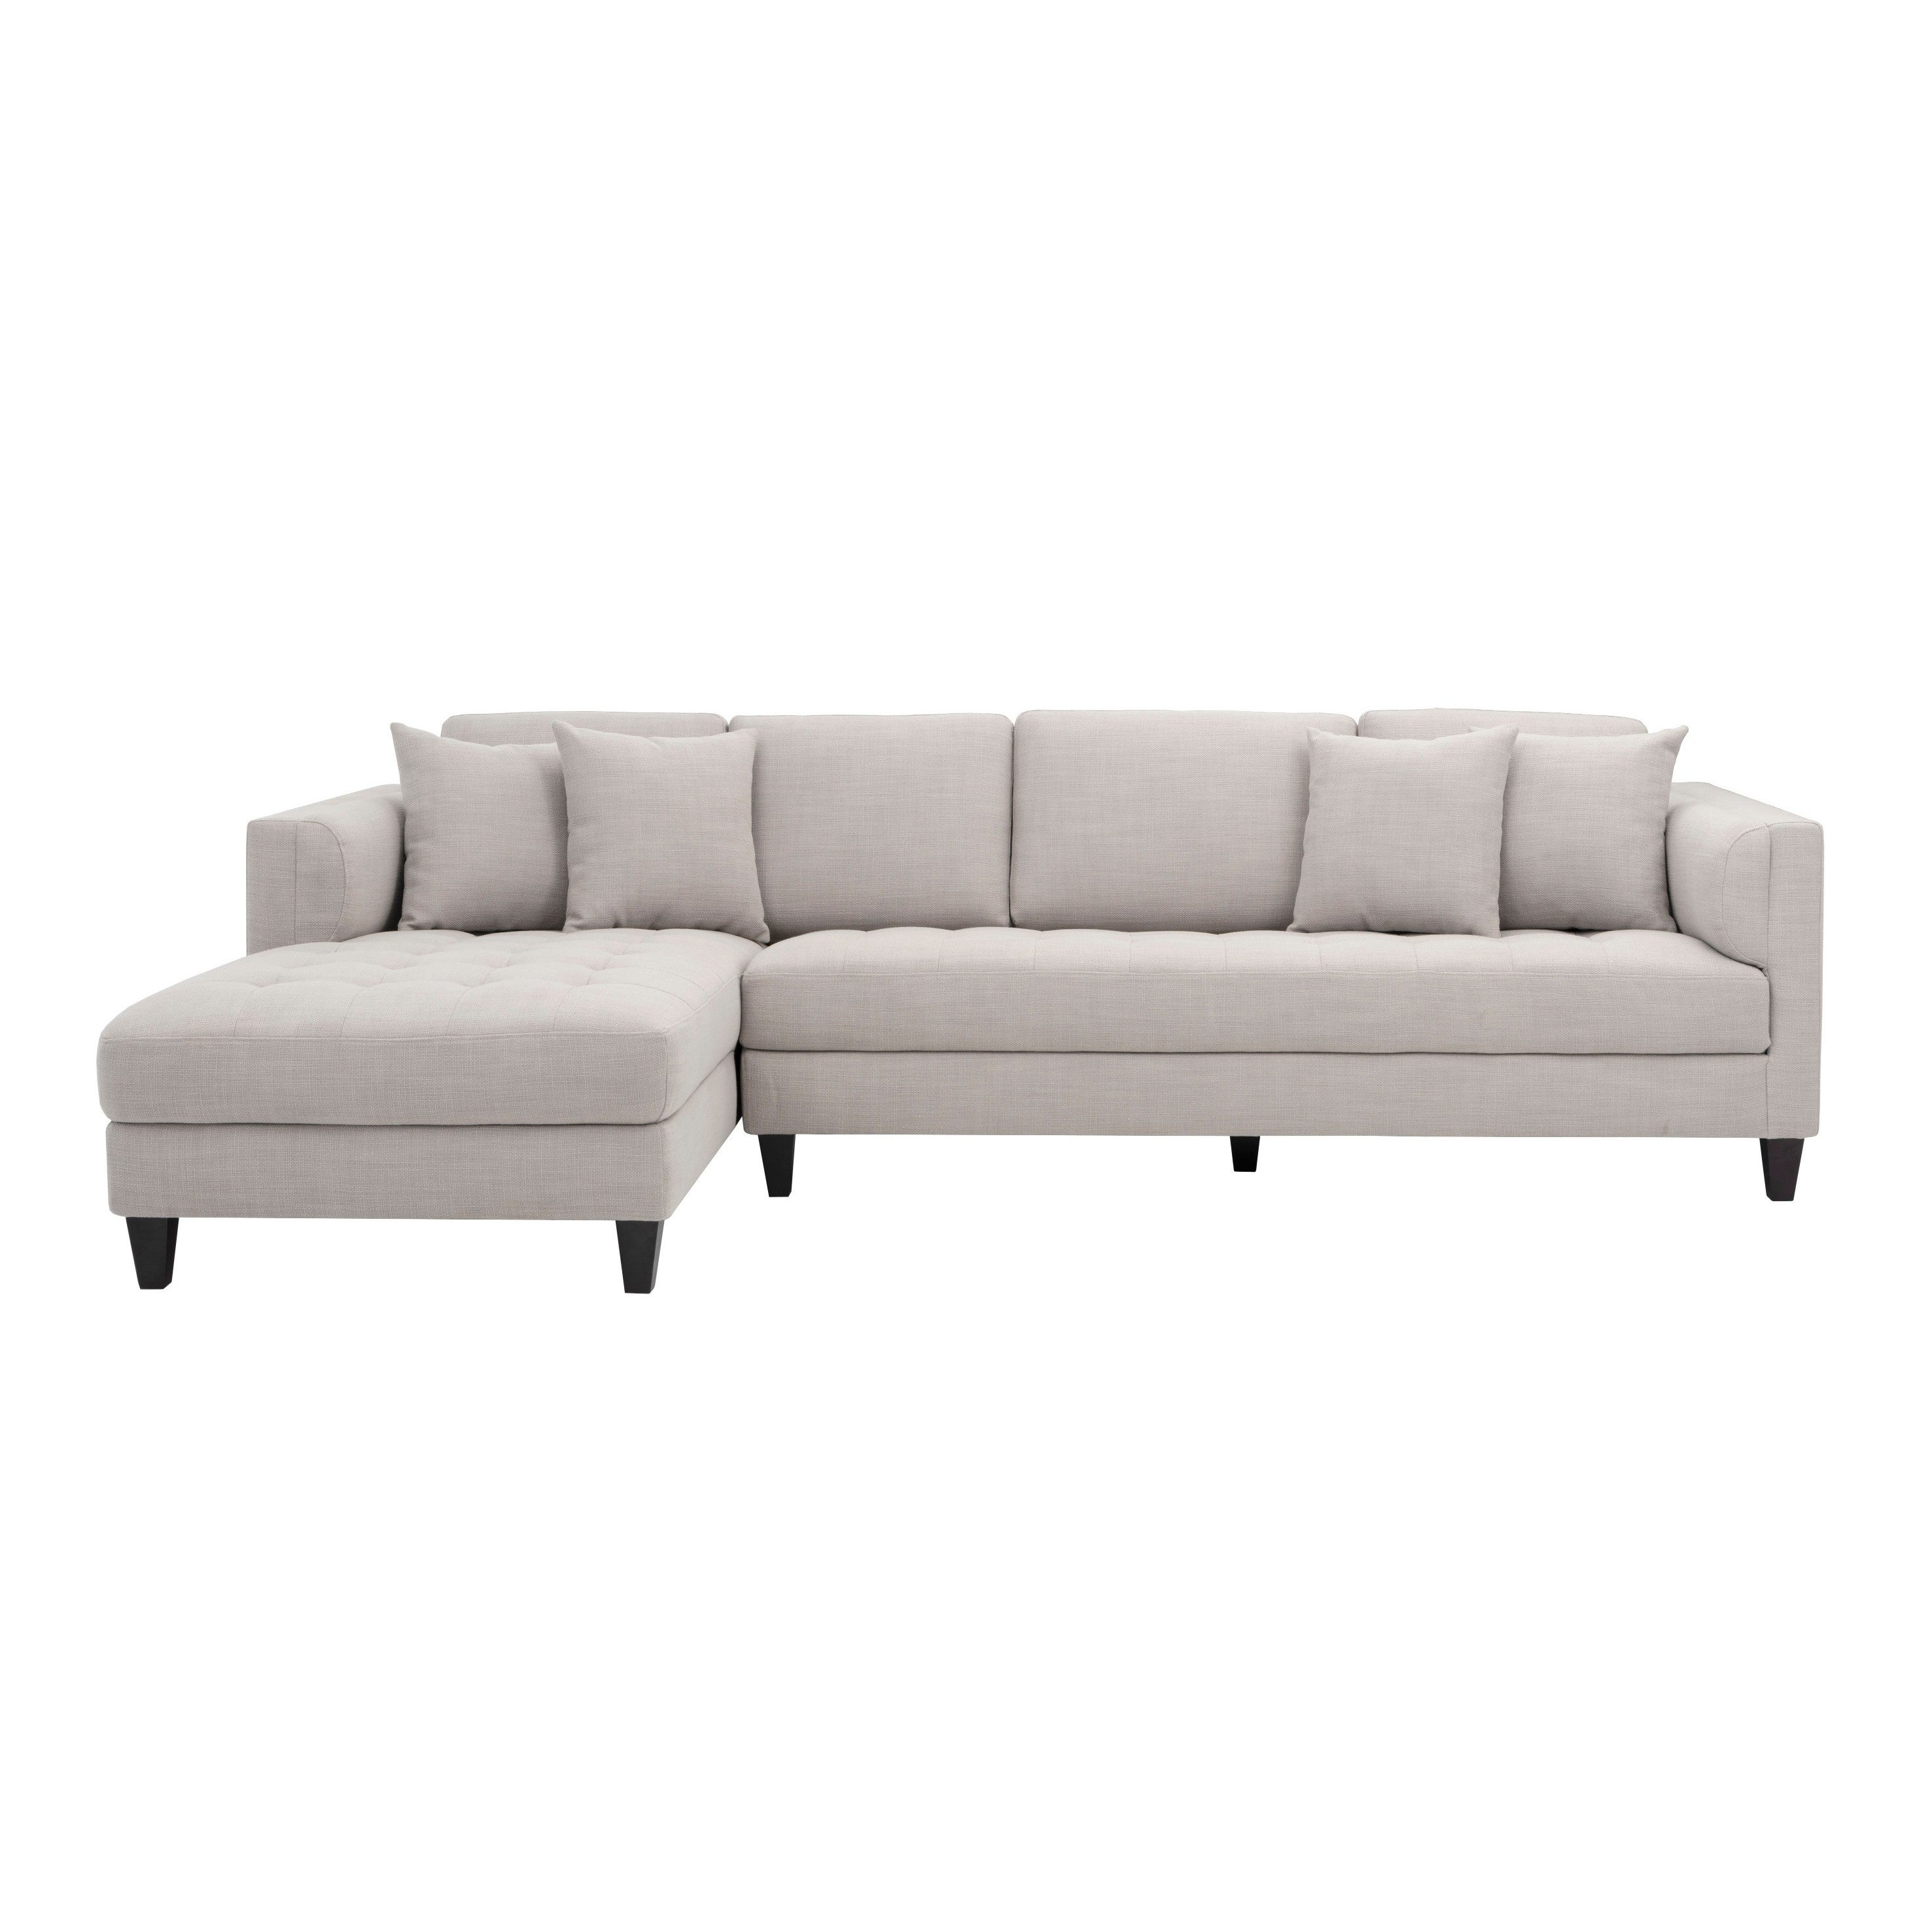 Genial Shop 5West Arthur Fabric Tufted Sofa Chaise   Free Shipping Today    Overstock.com   19843290